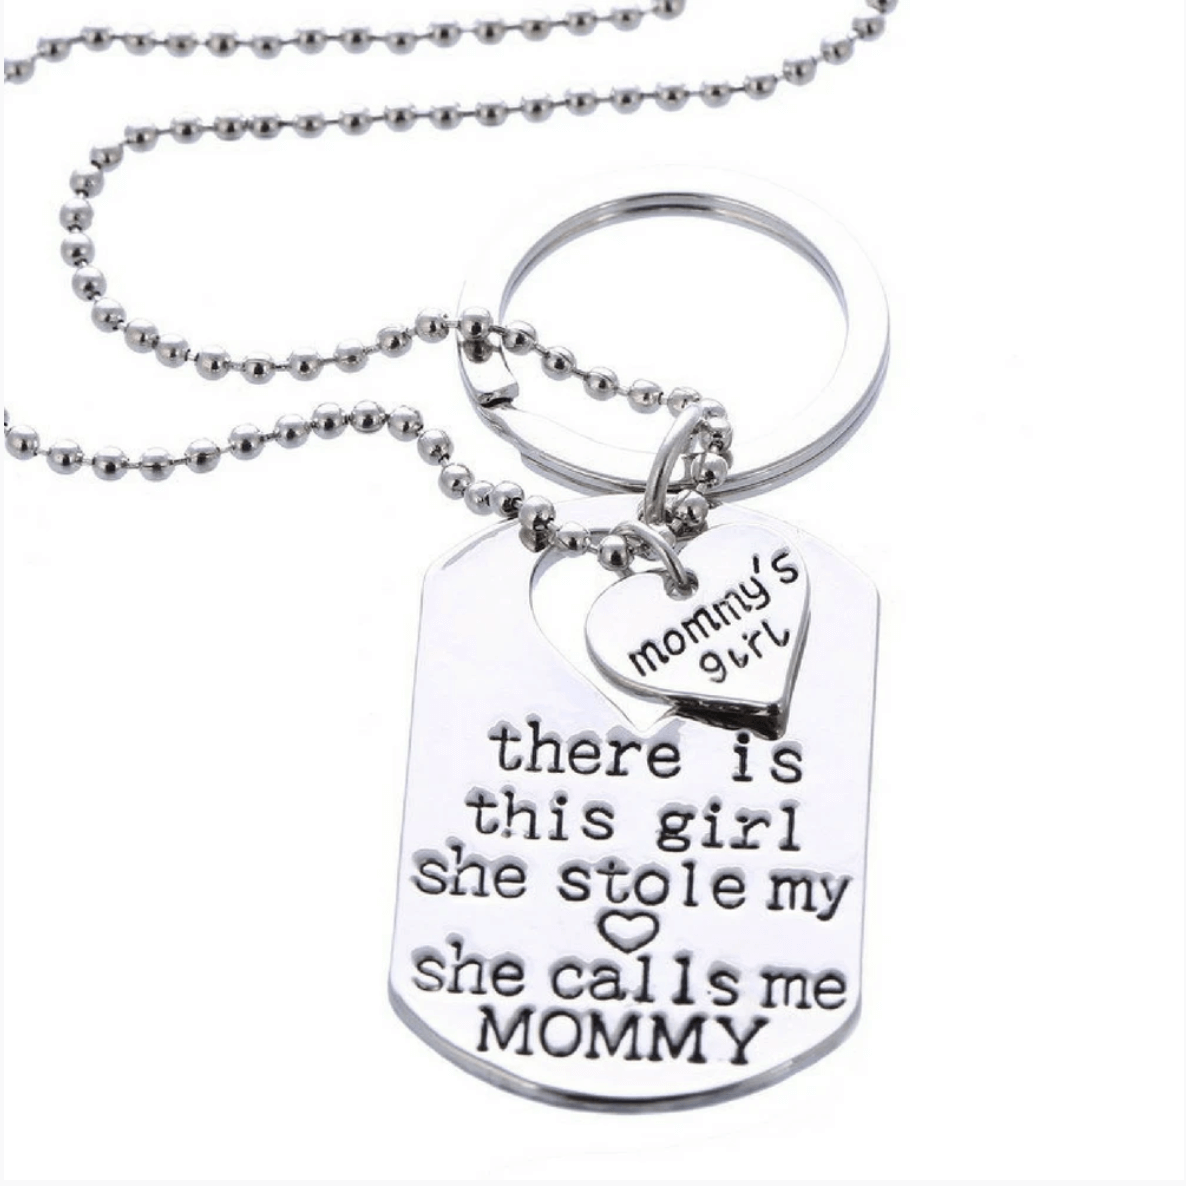 Mommy's Girl Necklace Set or Mommy's Girl Keychain Set